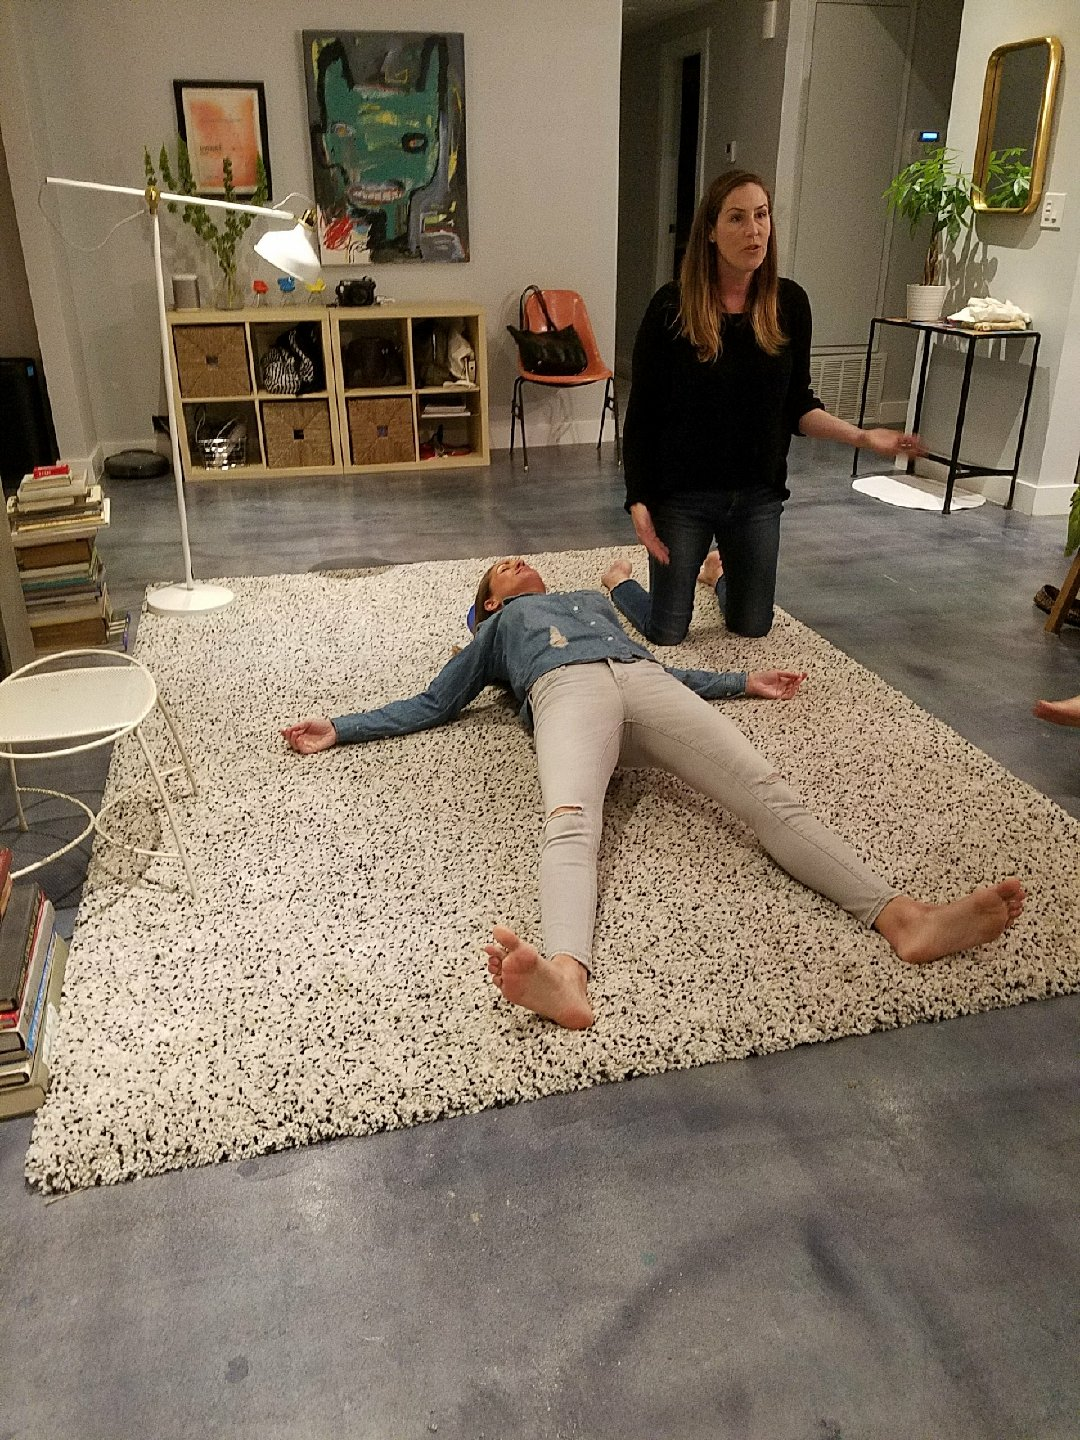 Just a casual foam roller moment between friends: here I am leading my friend Laura of @Queen_Canna in the spine release move I adore.